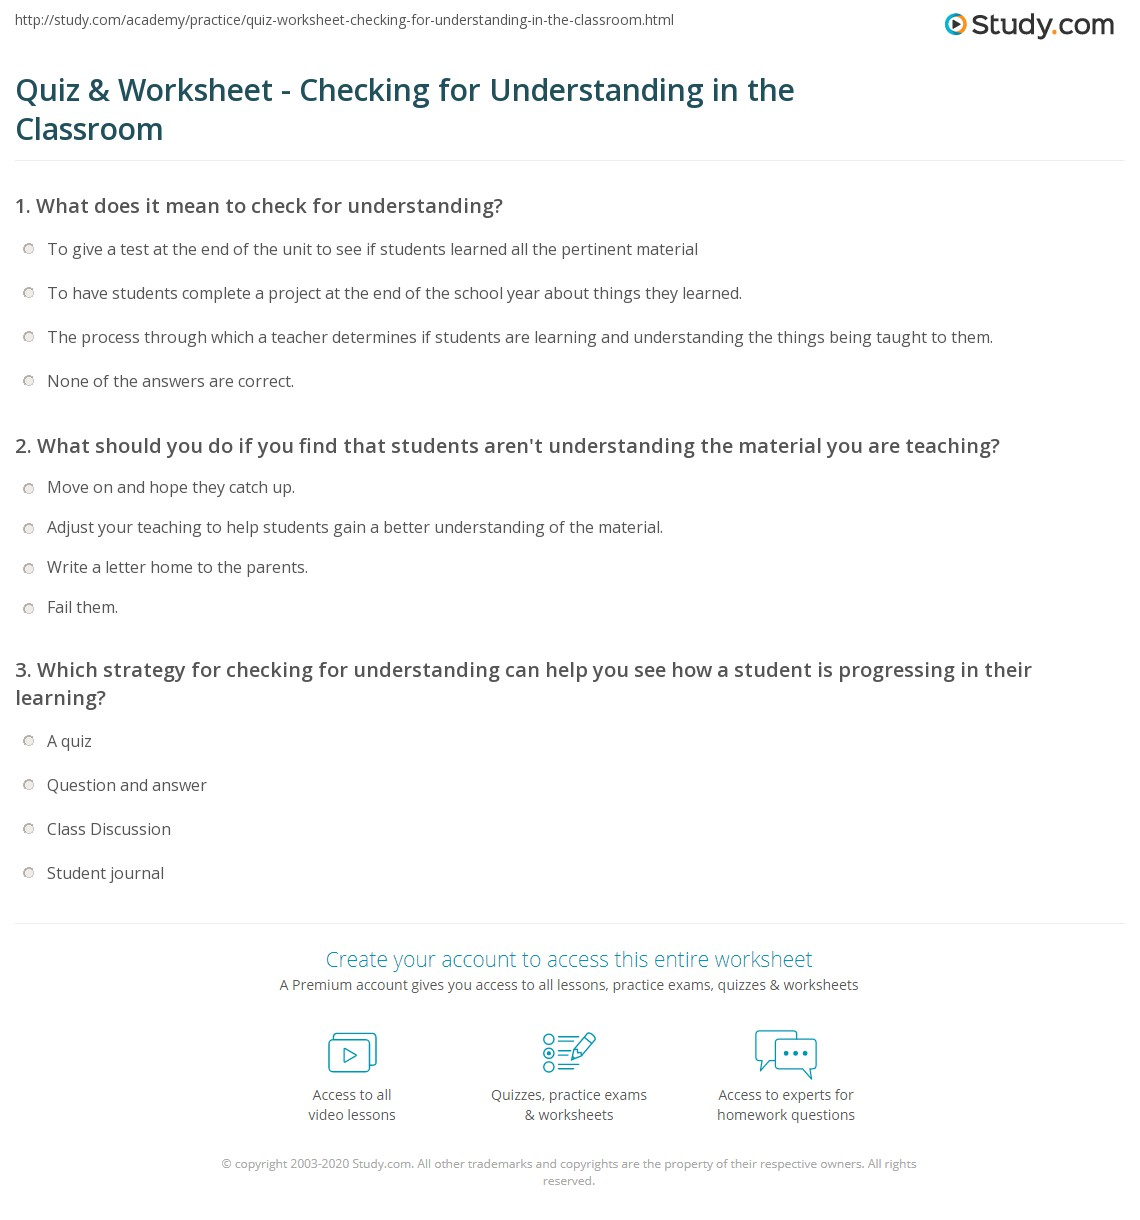 worksheet Writing Checks Worksheet quiz worksheet checking for understanding in the classroom print how to check strategies worksheet